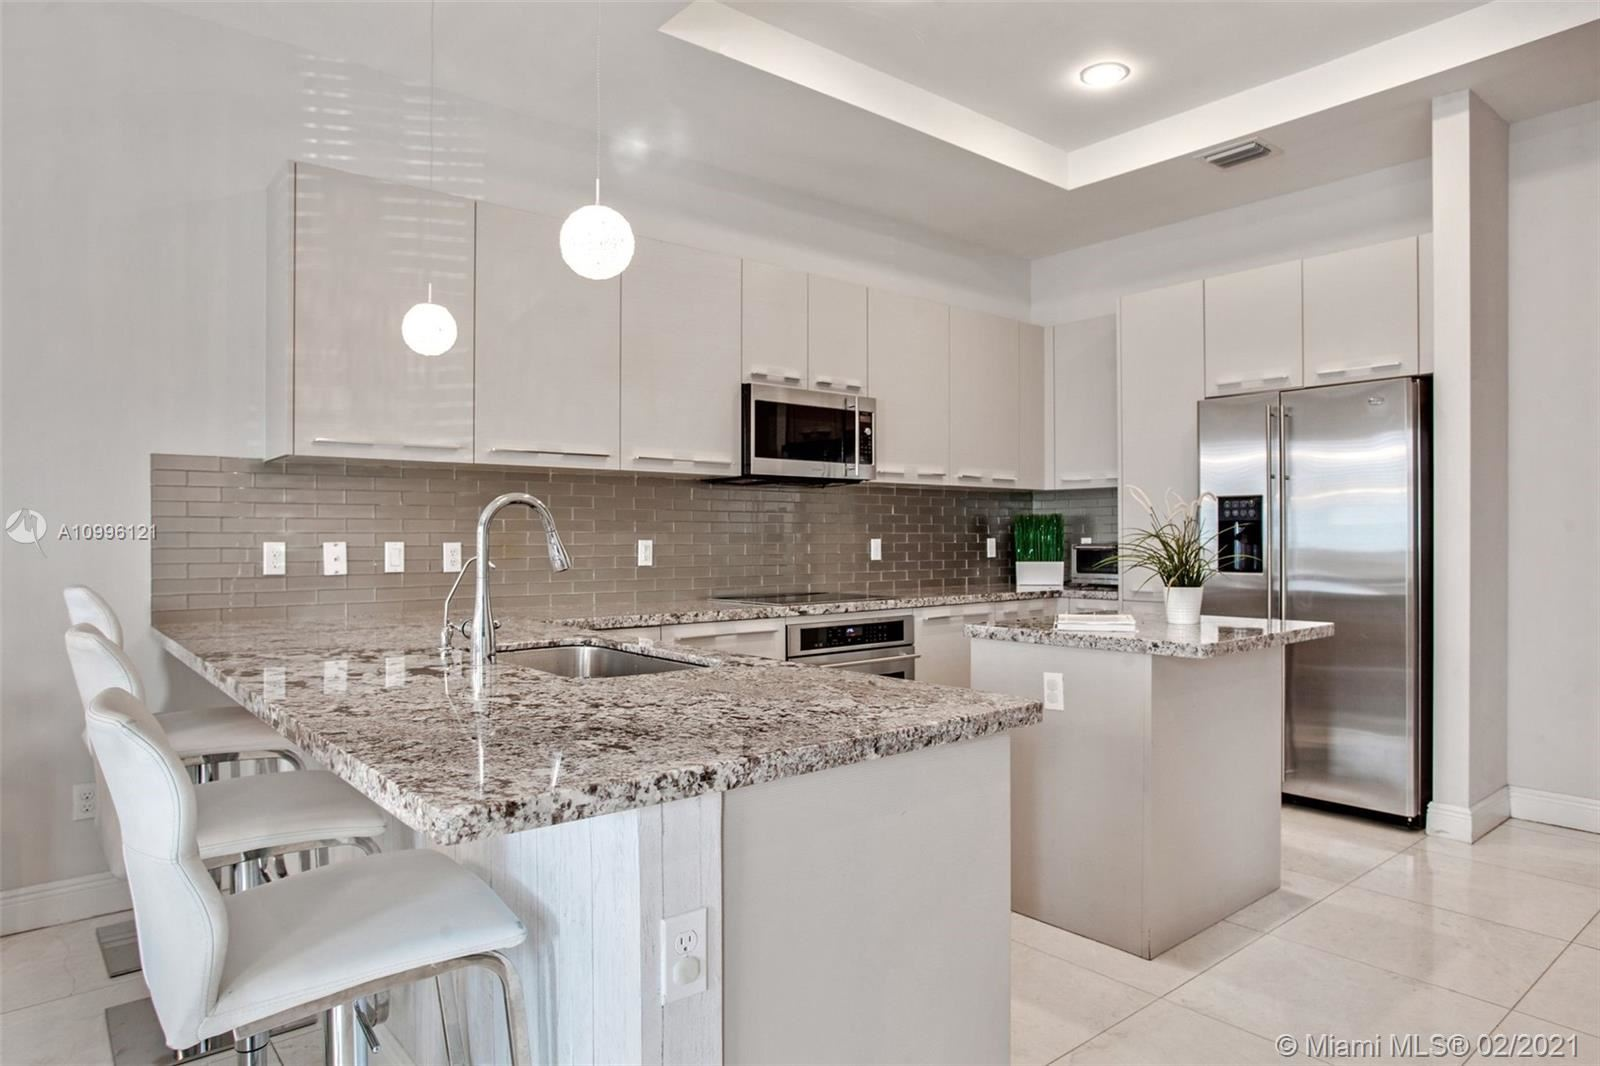 5175 NW 85th Ave #5175, Doral, FL 33166 - #: A10996121